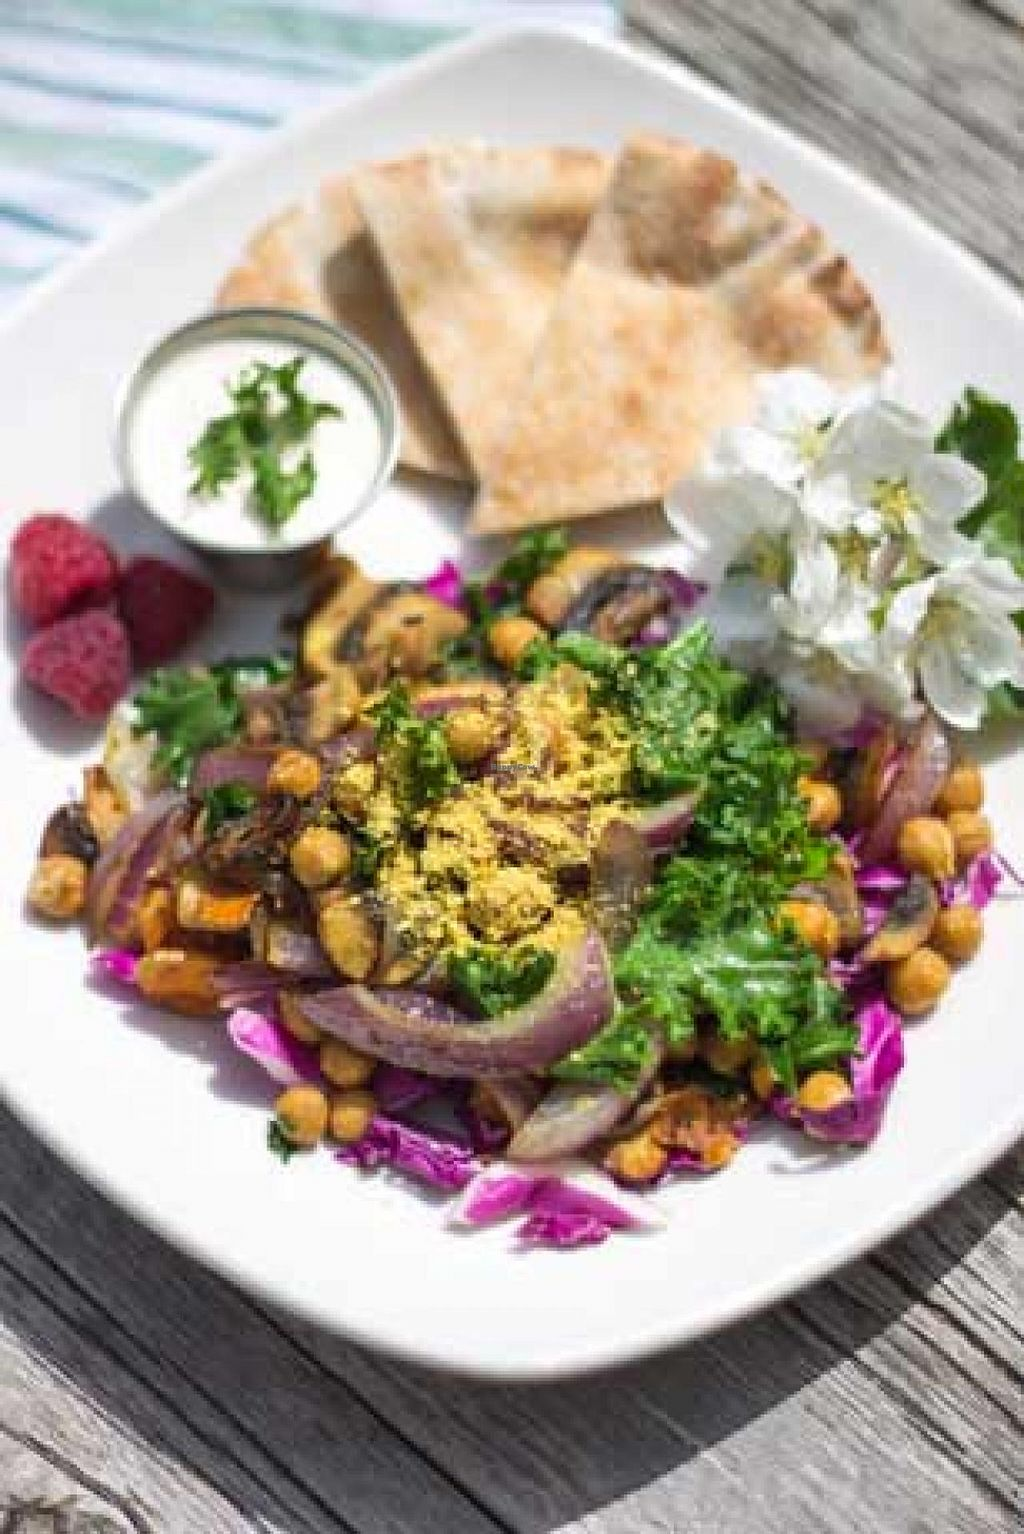 """Photo of Roni's Kitchen  by <a href=""""/members/profile/RonisKitchen"""">RonisKitchen</a> <br/>Chickpea Scramble- Seared, spiced red onions, fresh turmeric, mushrooms, kale & chickpeas on a bed of fresh red cabbage and sprinkled with nutritional yeast. Served with tahini and organic whole-wheat pita <br/> July 8, 2015  - <a href='/contact/abuse/image/52840/108594'>Report</a>"""